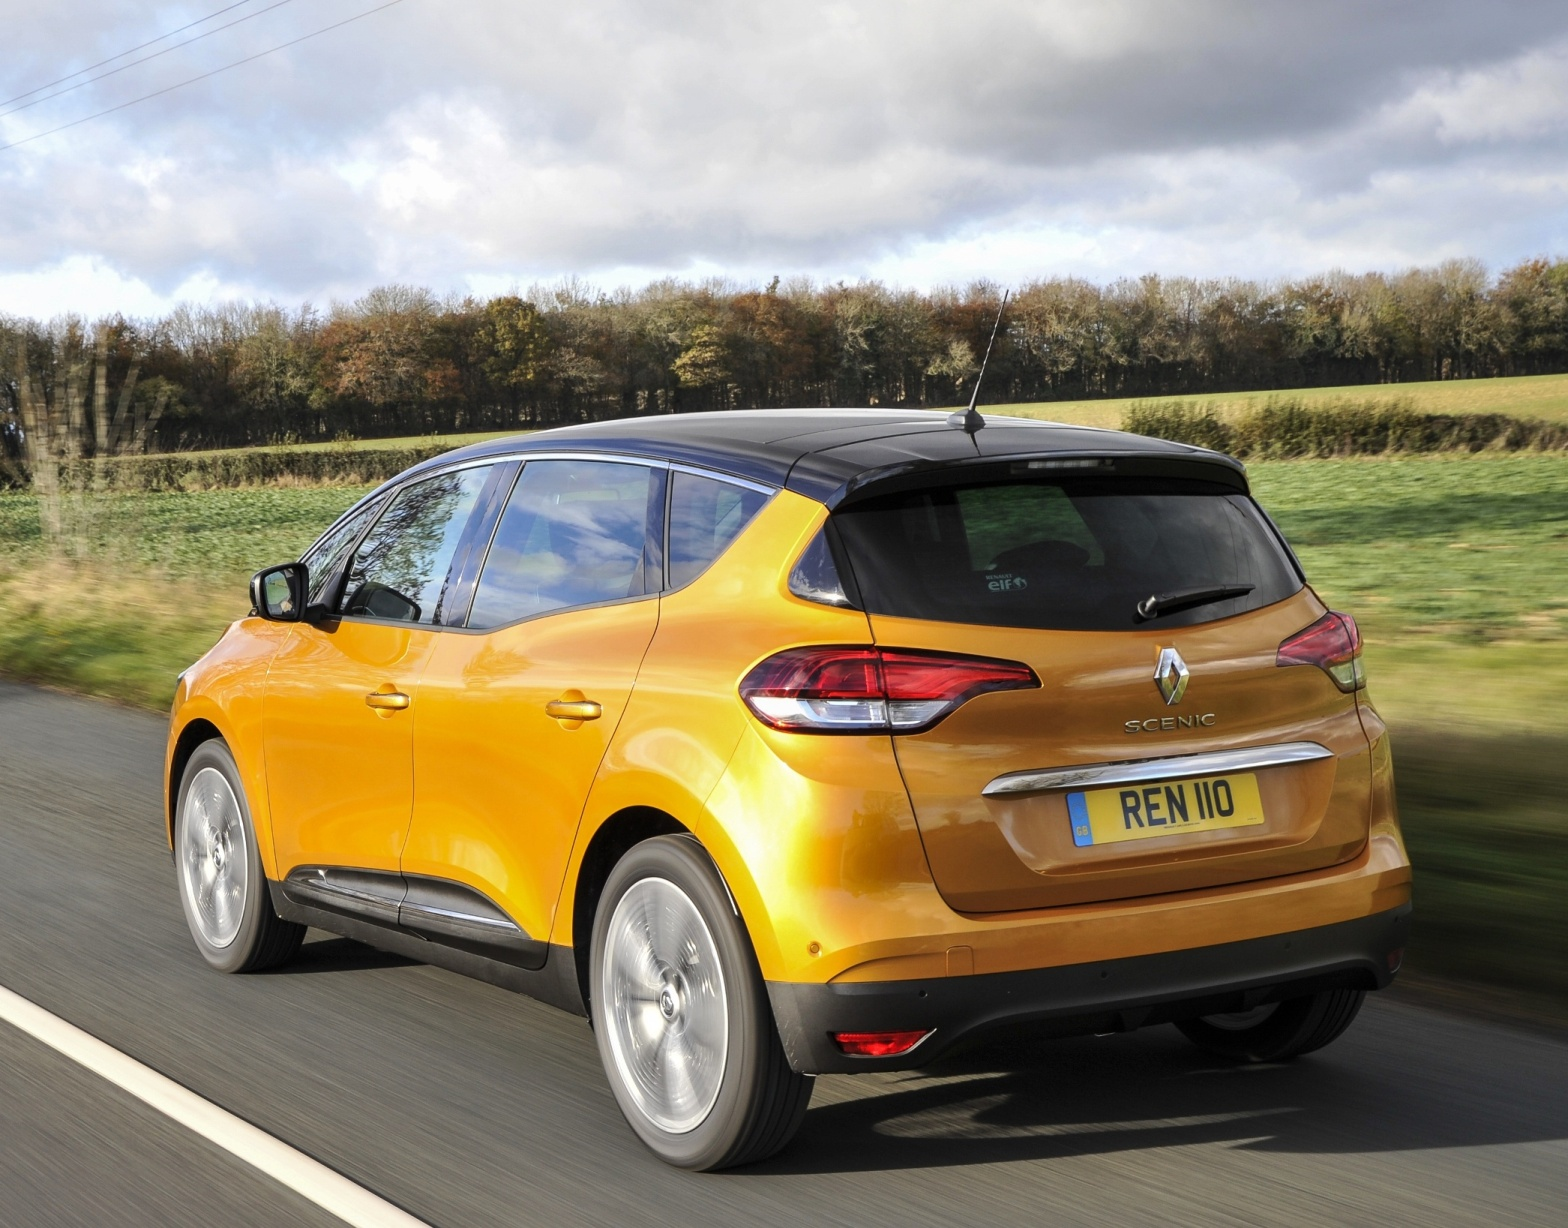 renault-scenic-dci-110-side-rear-action